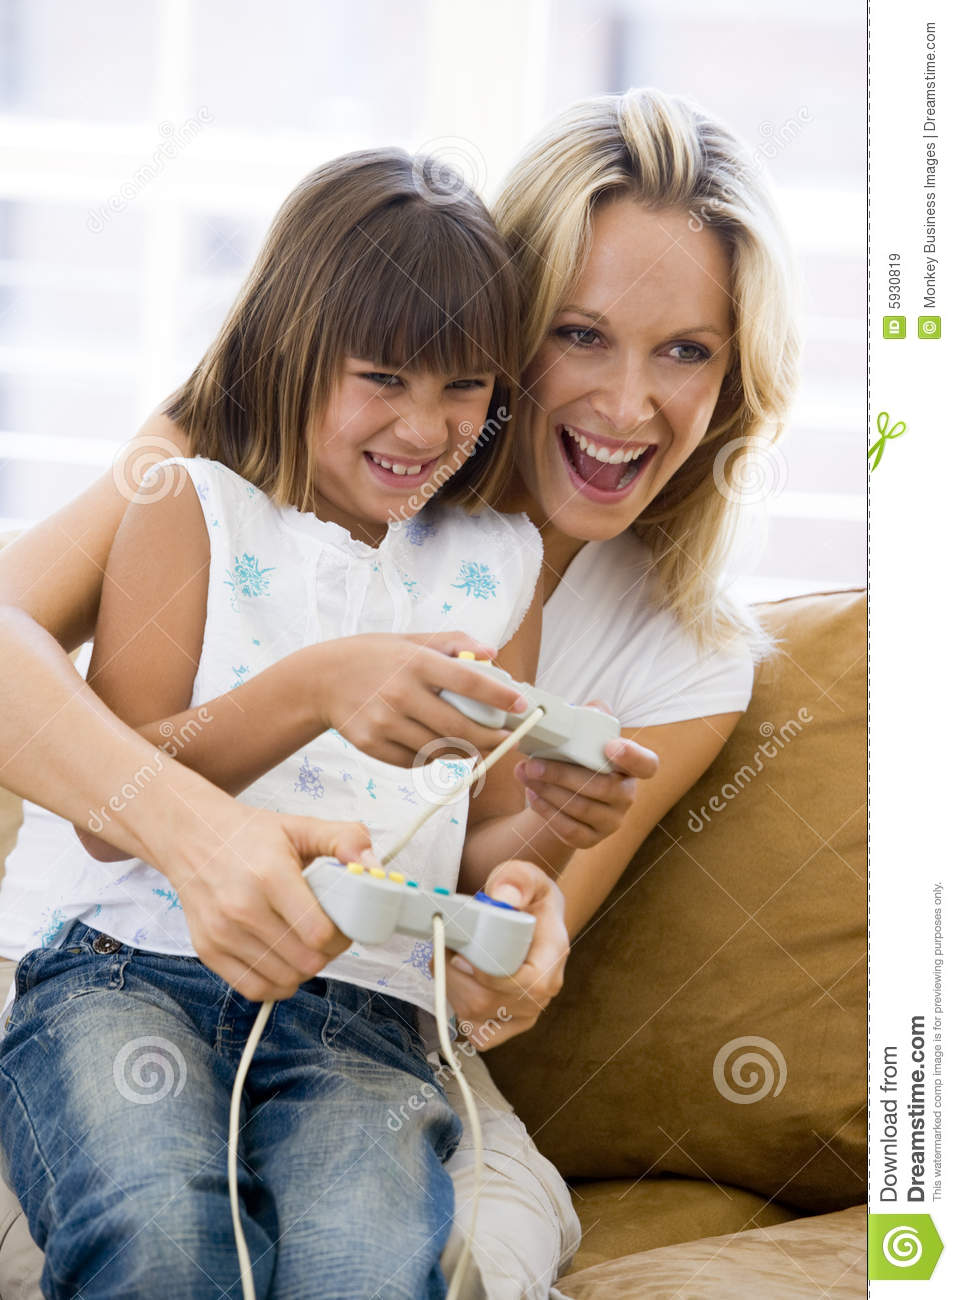 Woman and young girl in living room